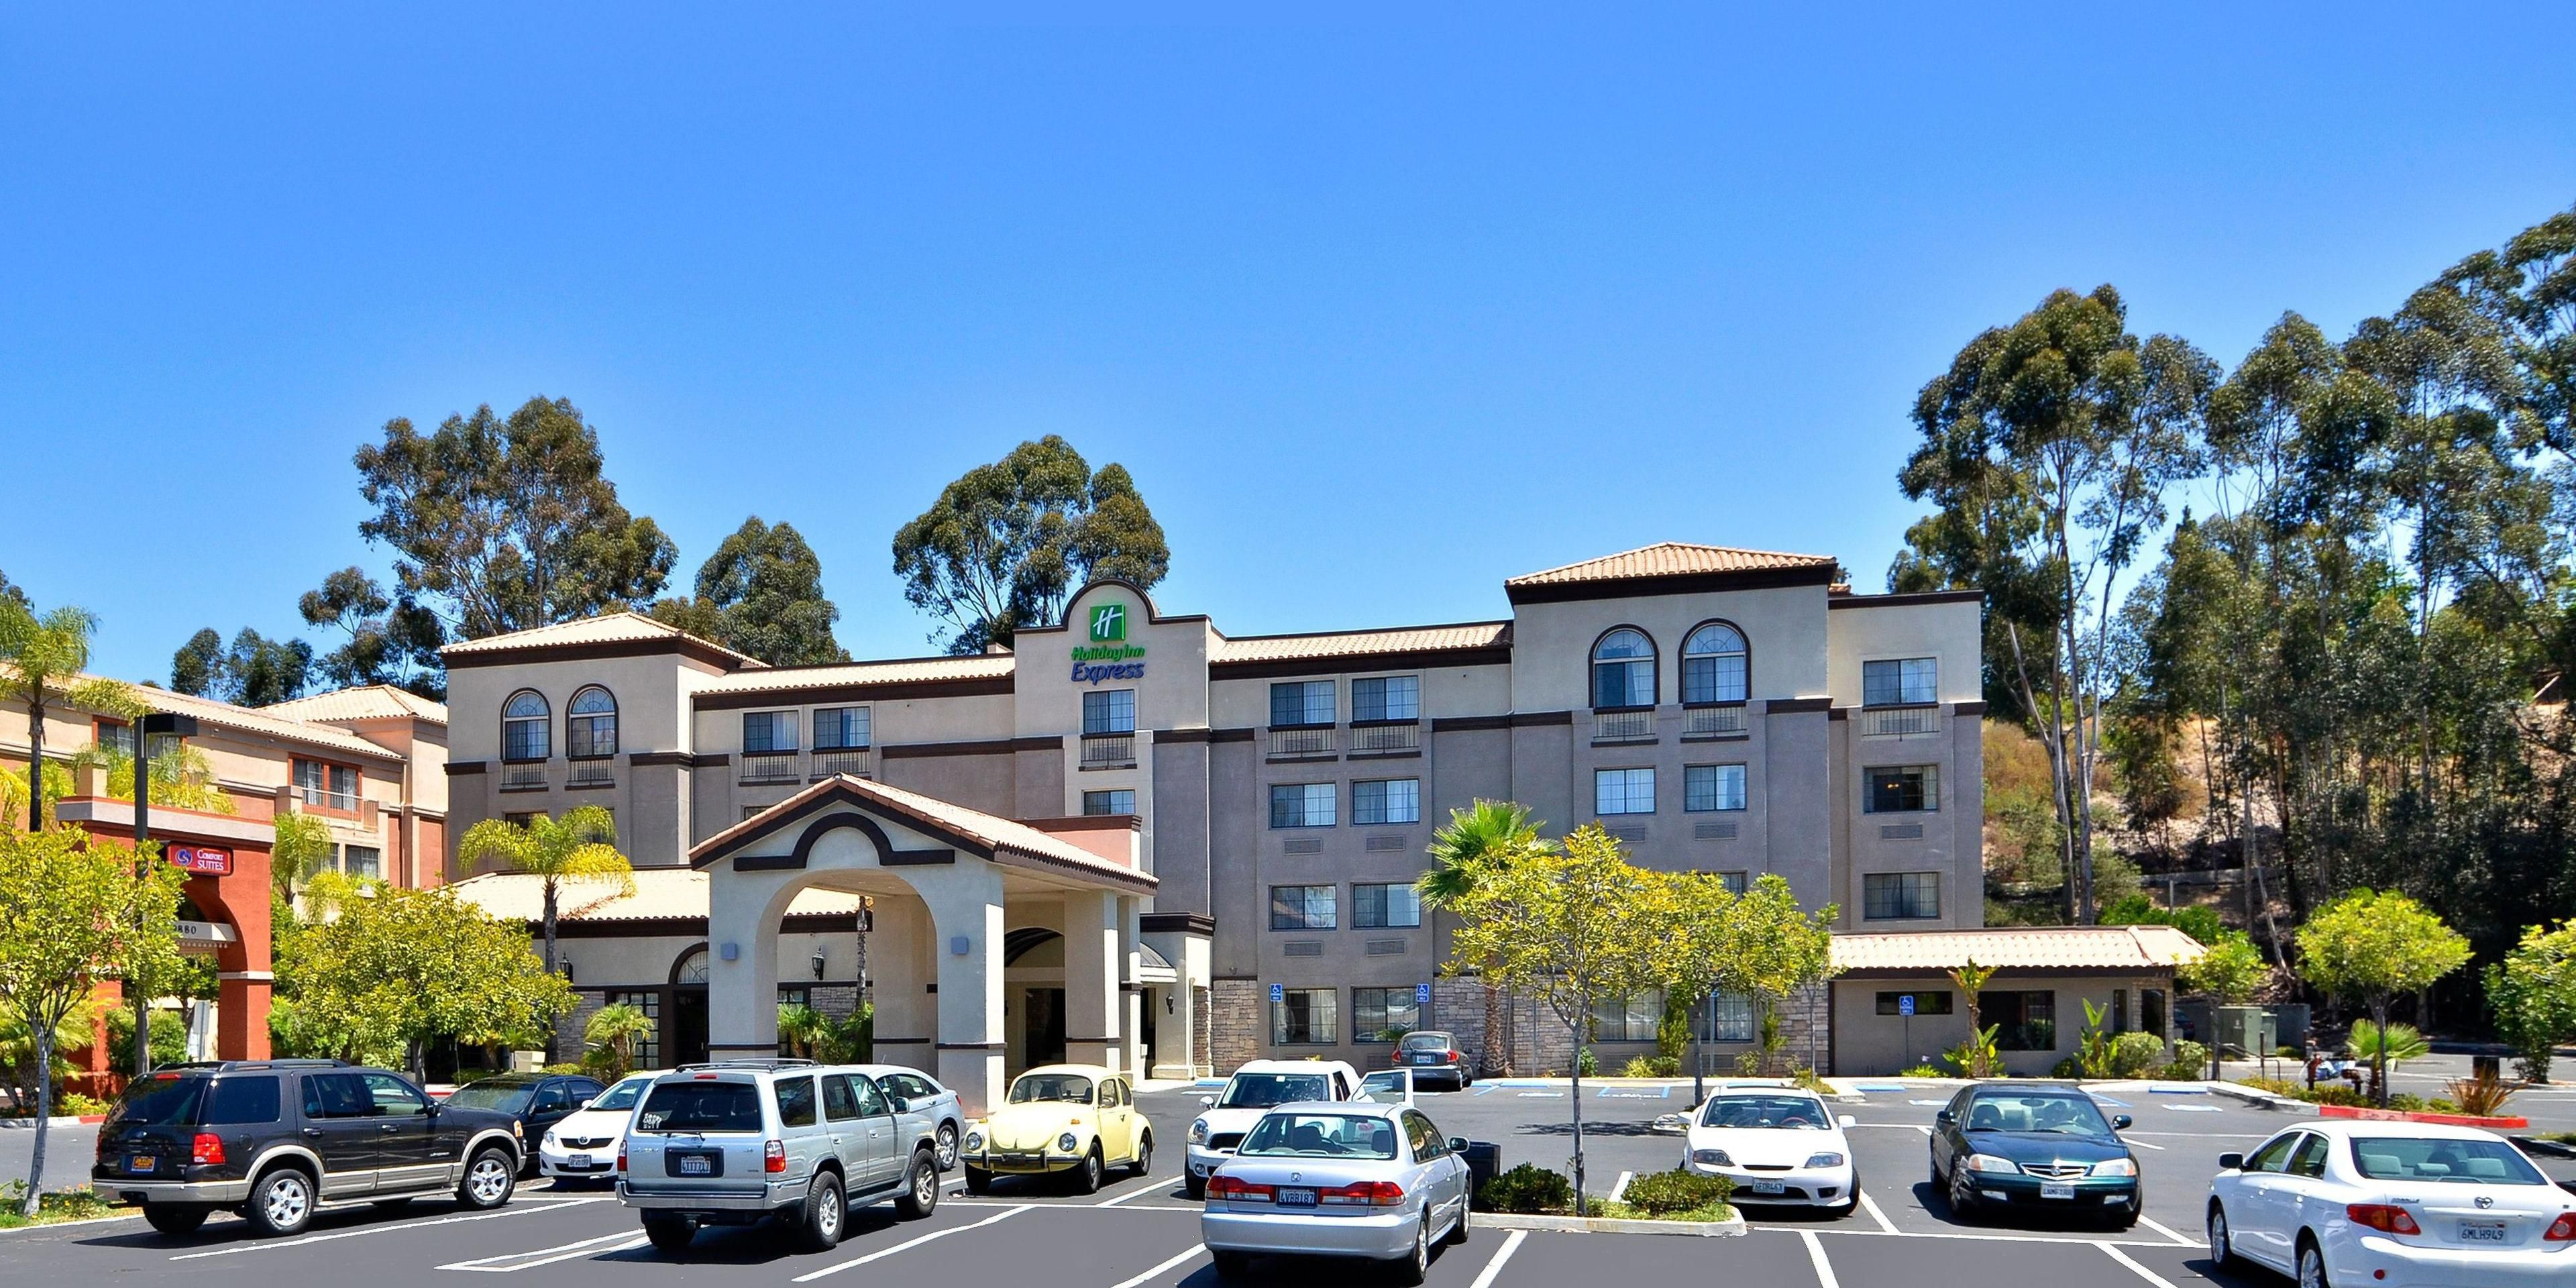 holiday-inn-express-san-diego-3577847211-2x1